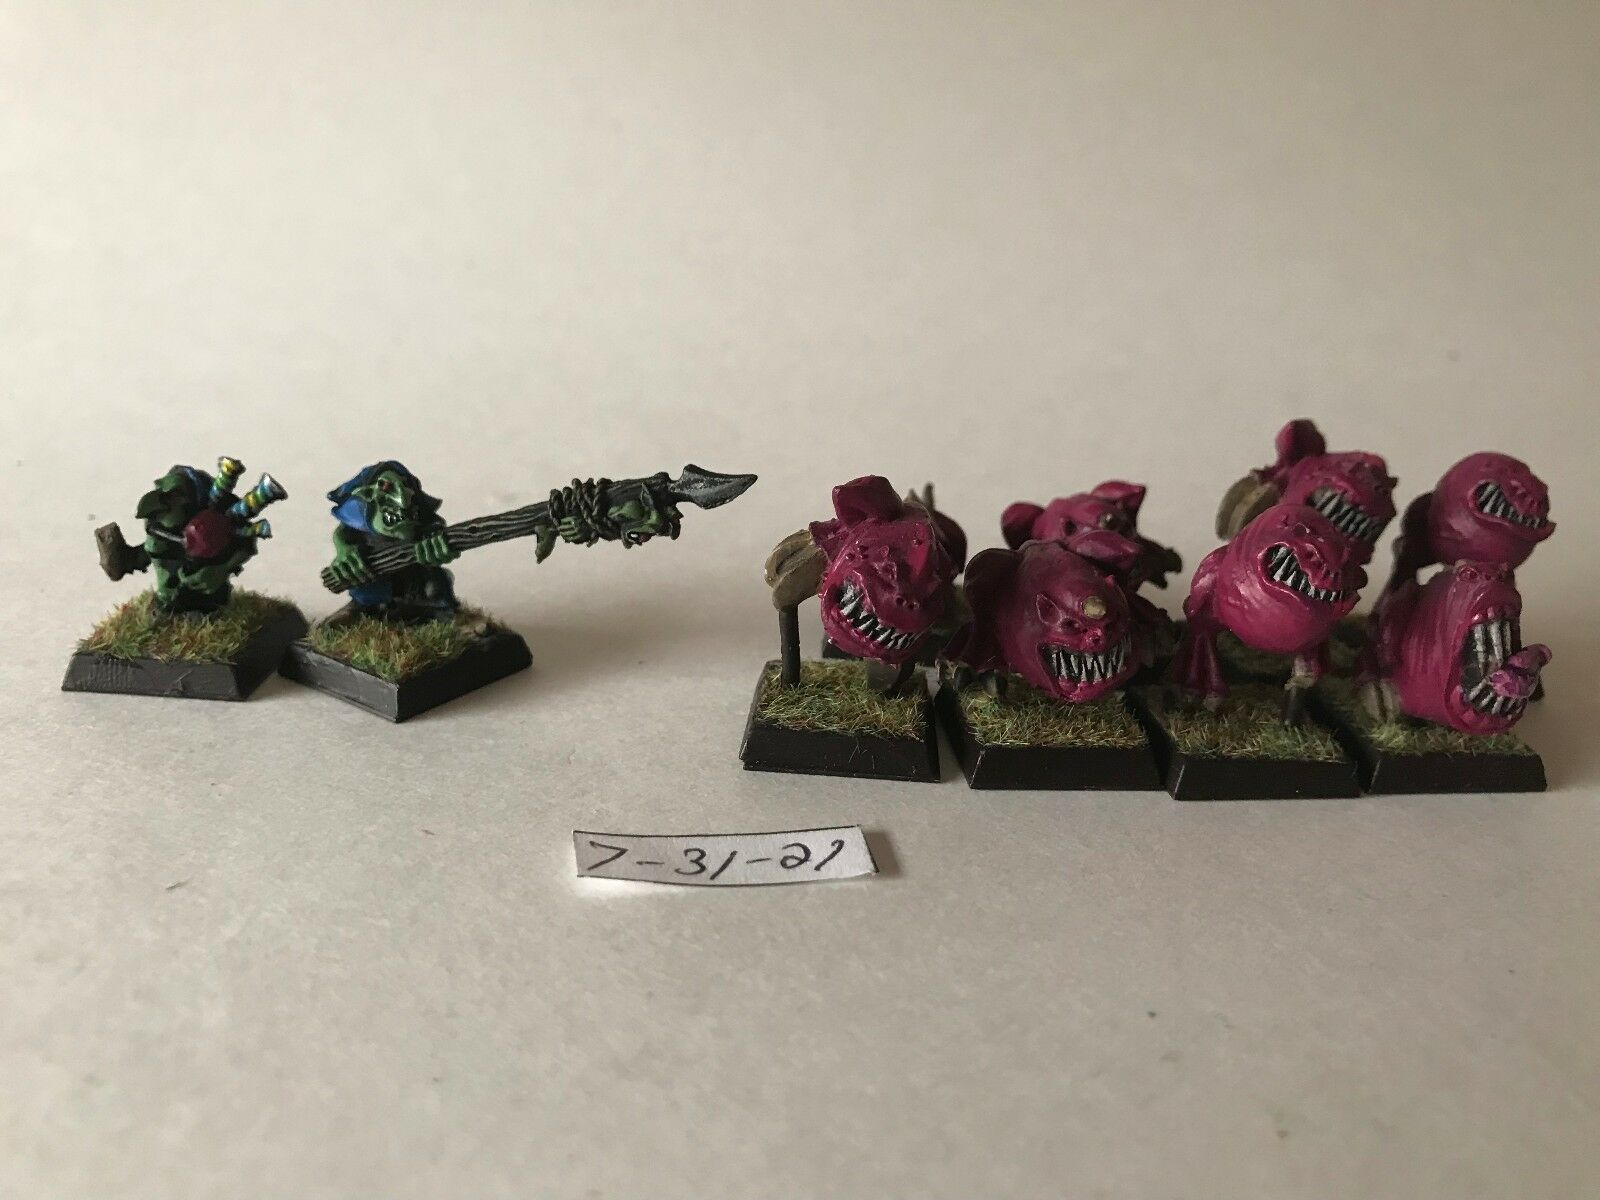 Warhammer Orcos y Goblins-Squig pastores-Cave squigs-finecast x8